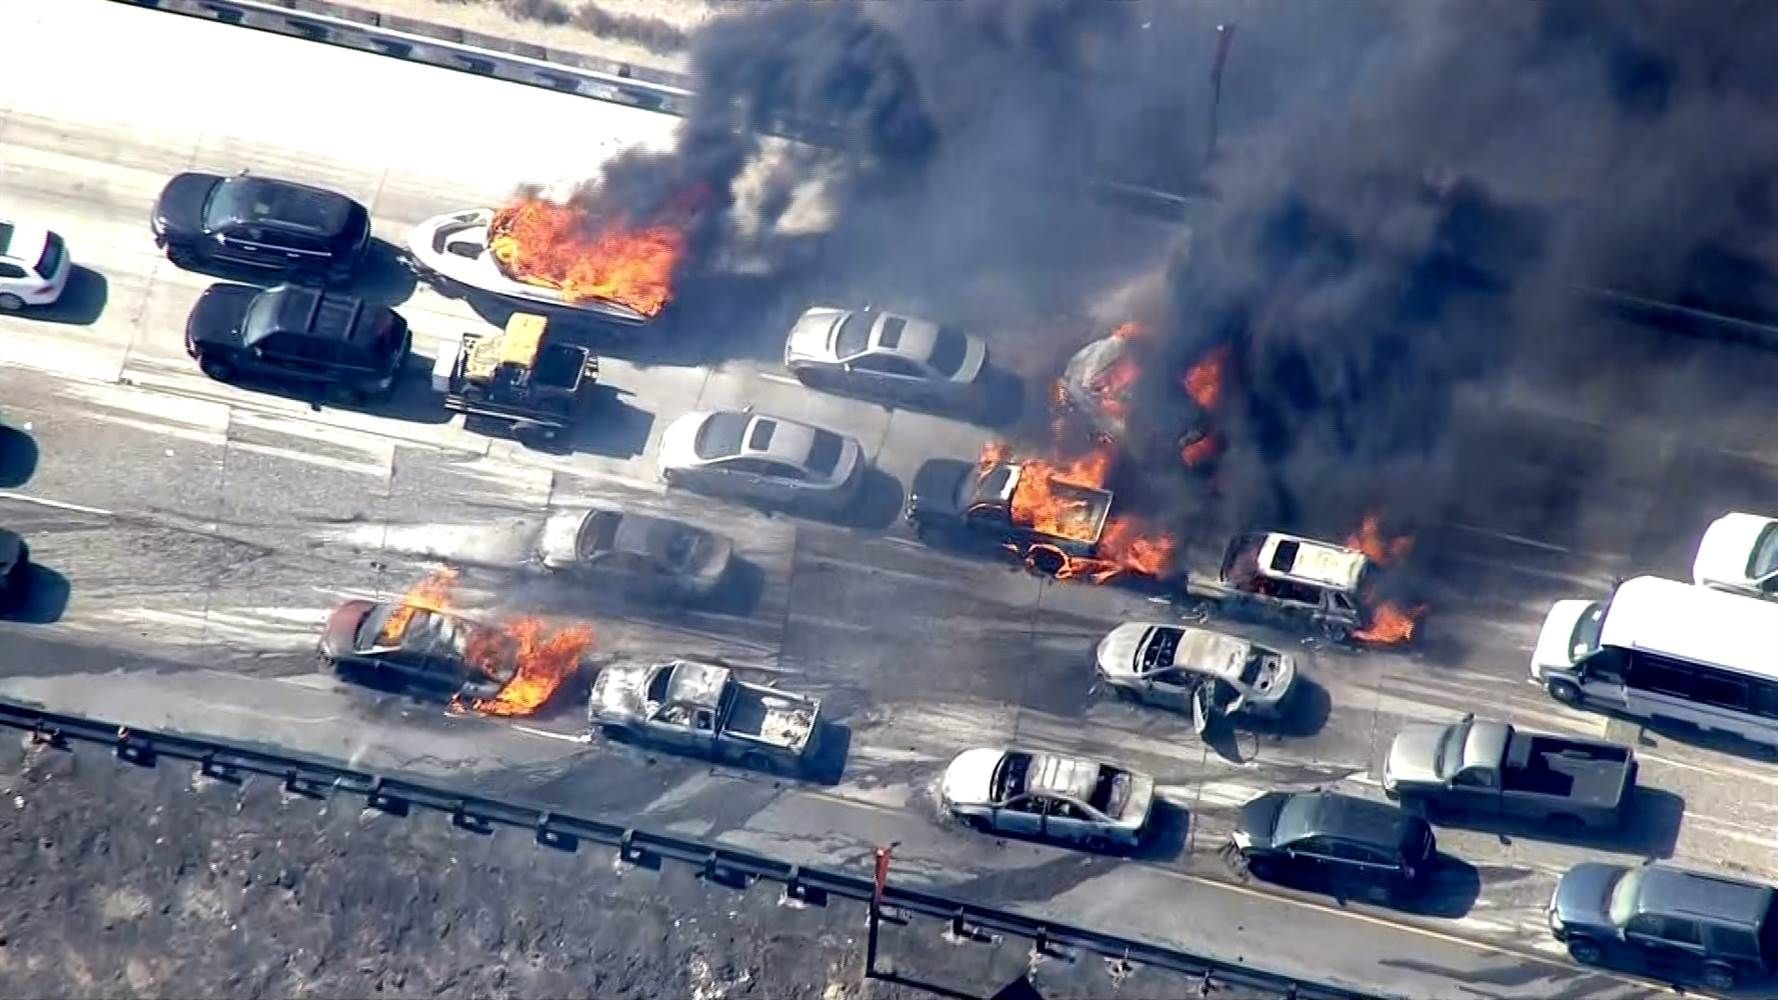 fires in california today Yahoo Image Search Results